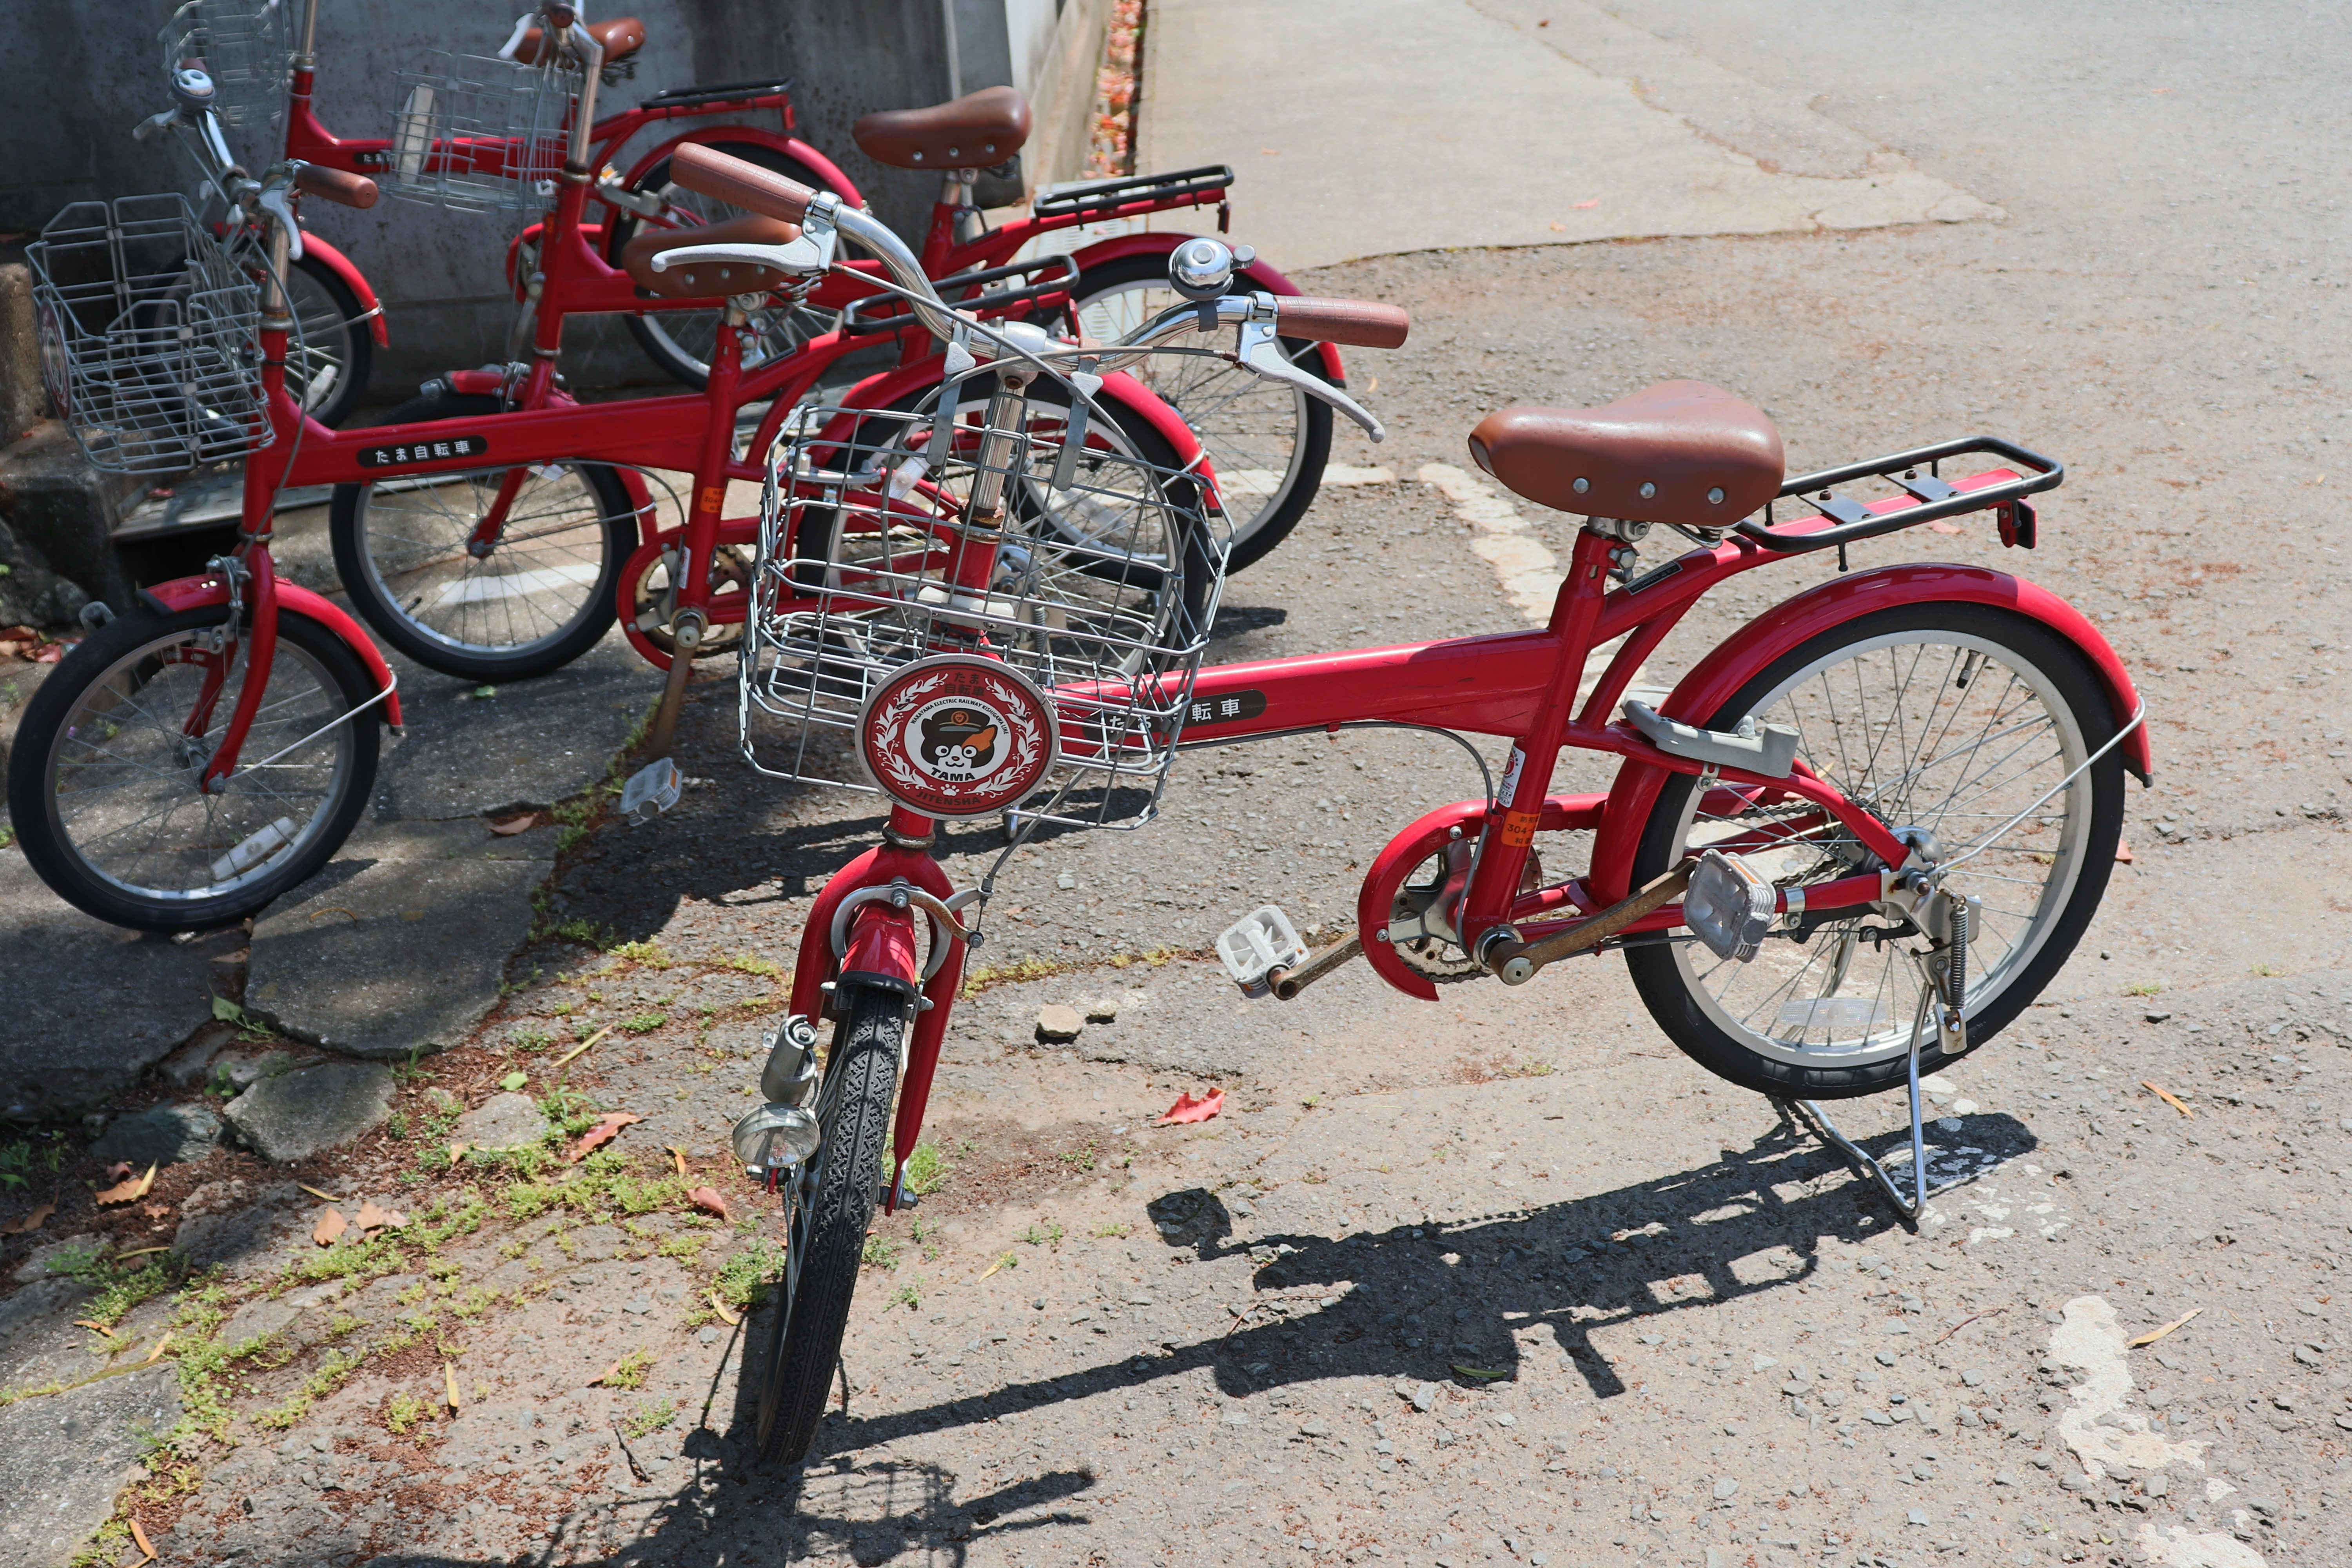 red bike featuring tama the cat